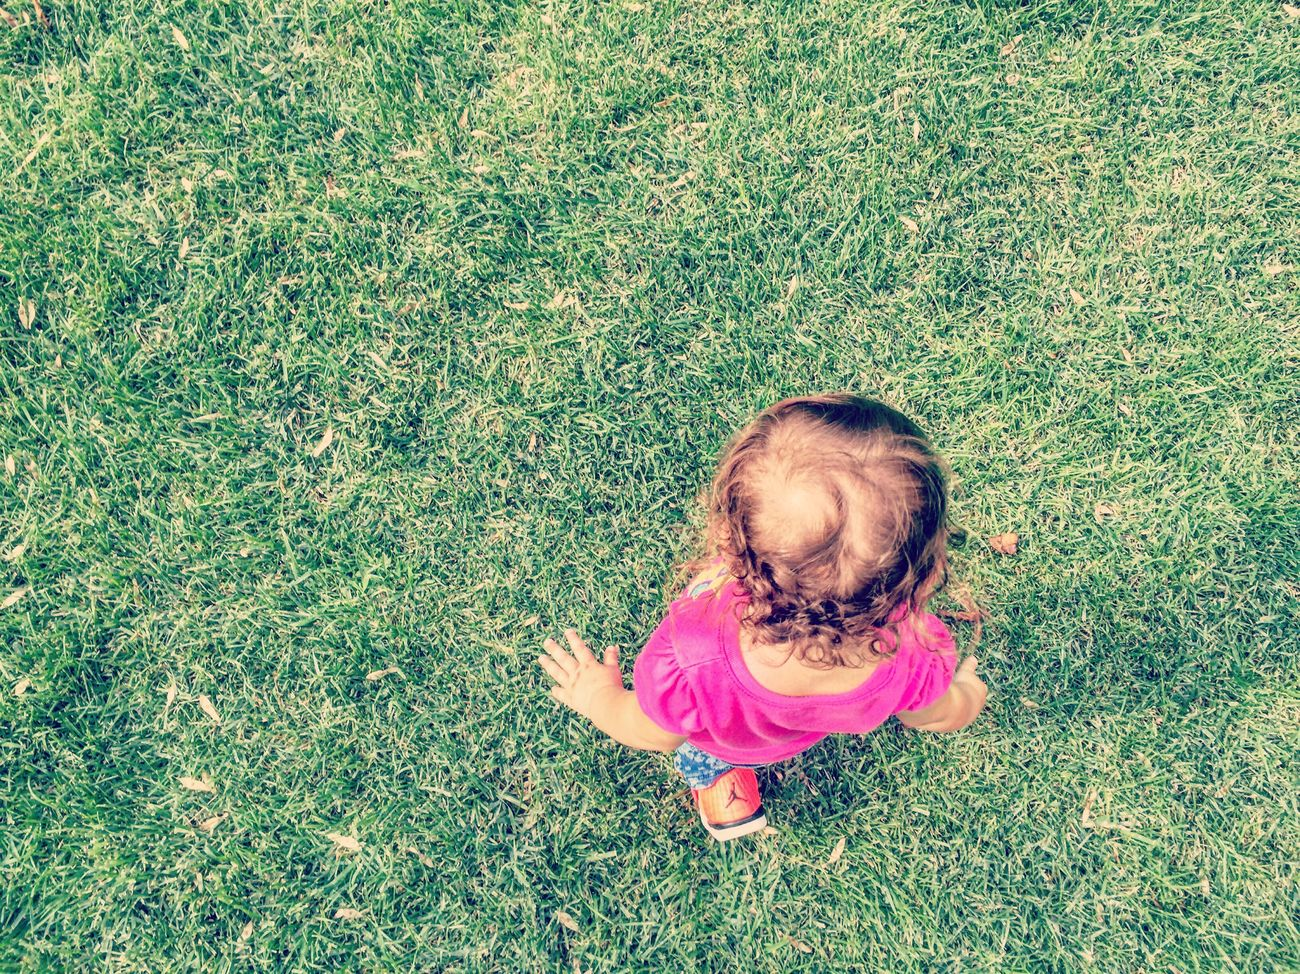 Reimparare a camminare. Grass Babyhood Happiness Childhood Outdoors First Eyeem Photo